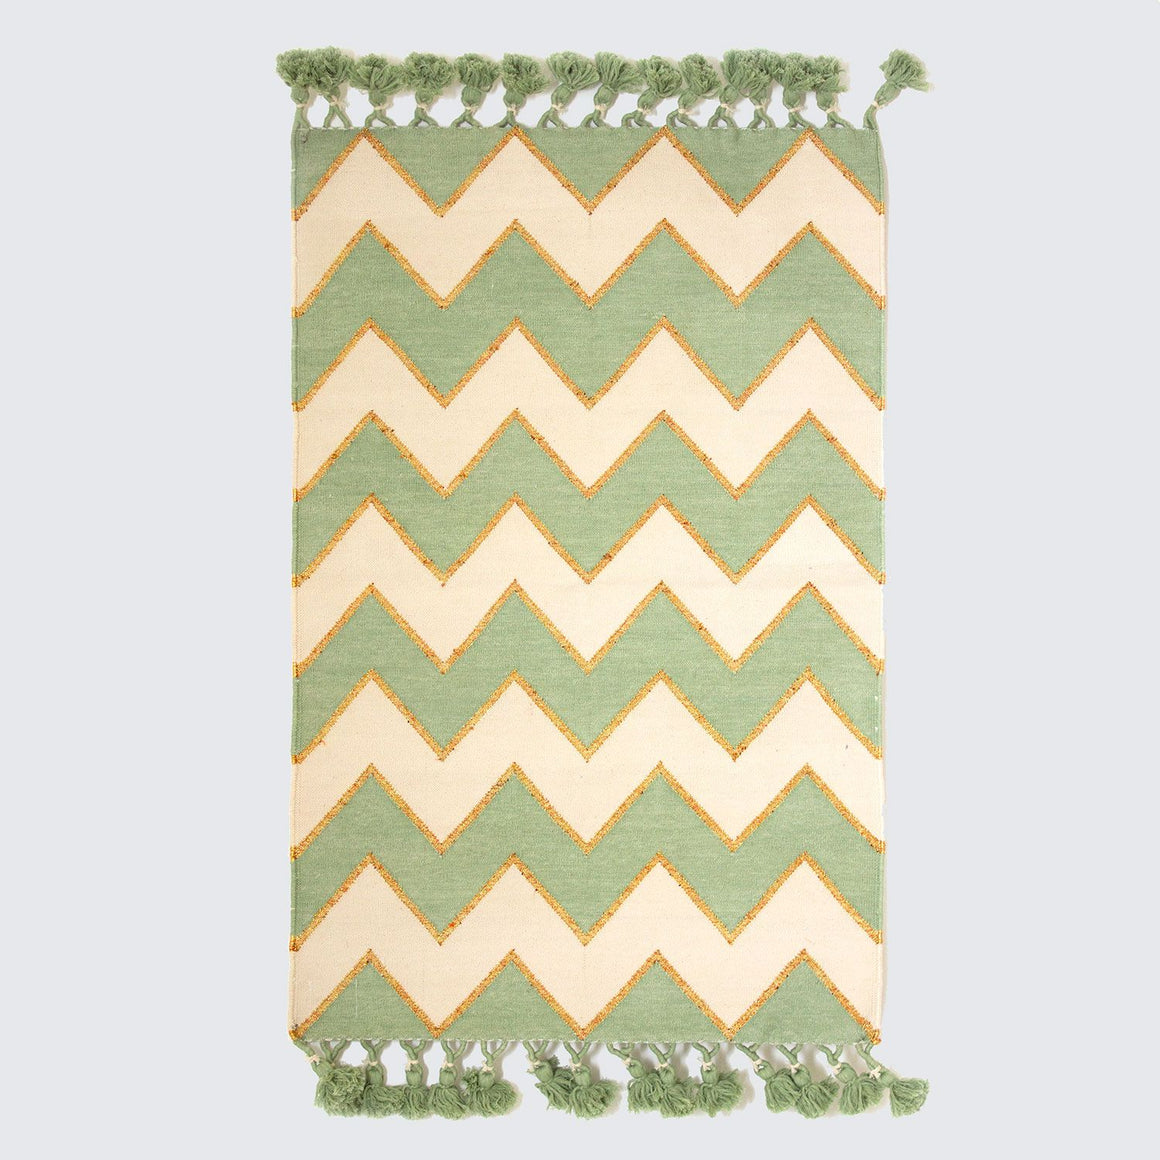 Indian Hand Woven Mint Zig Zag Rugs '60cm x 90cm'